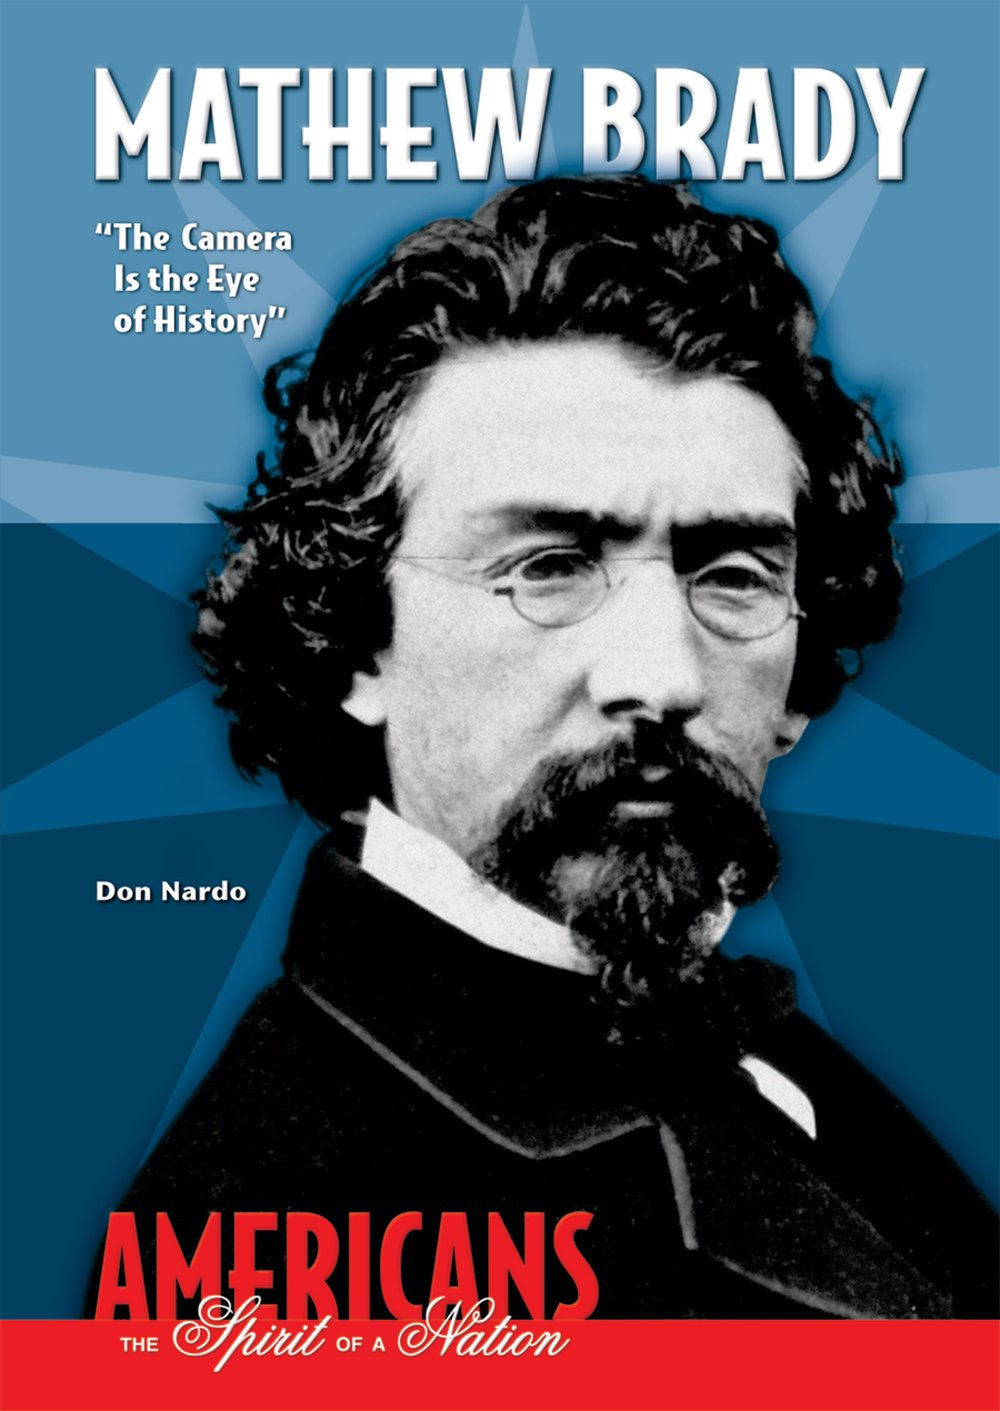 Mathew Brady: The Camera Is the Eye of History (Americans the Spirit of a Nation): Don Nardo: 9780766030237: Amazon.com: Books